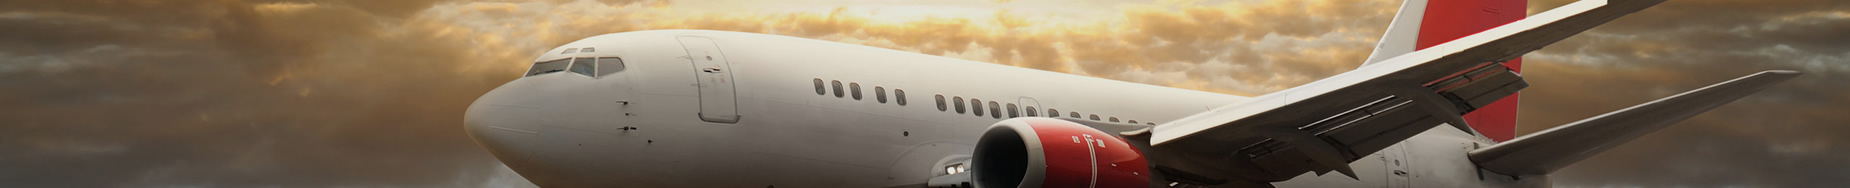 airline-page-banner